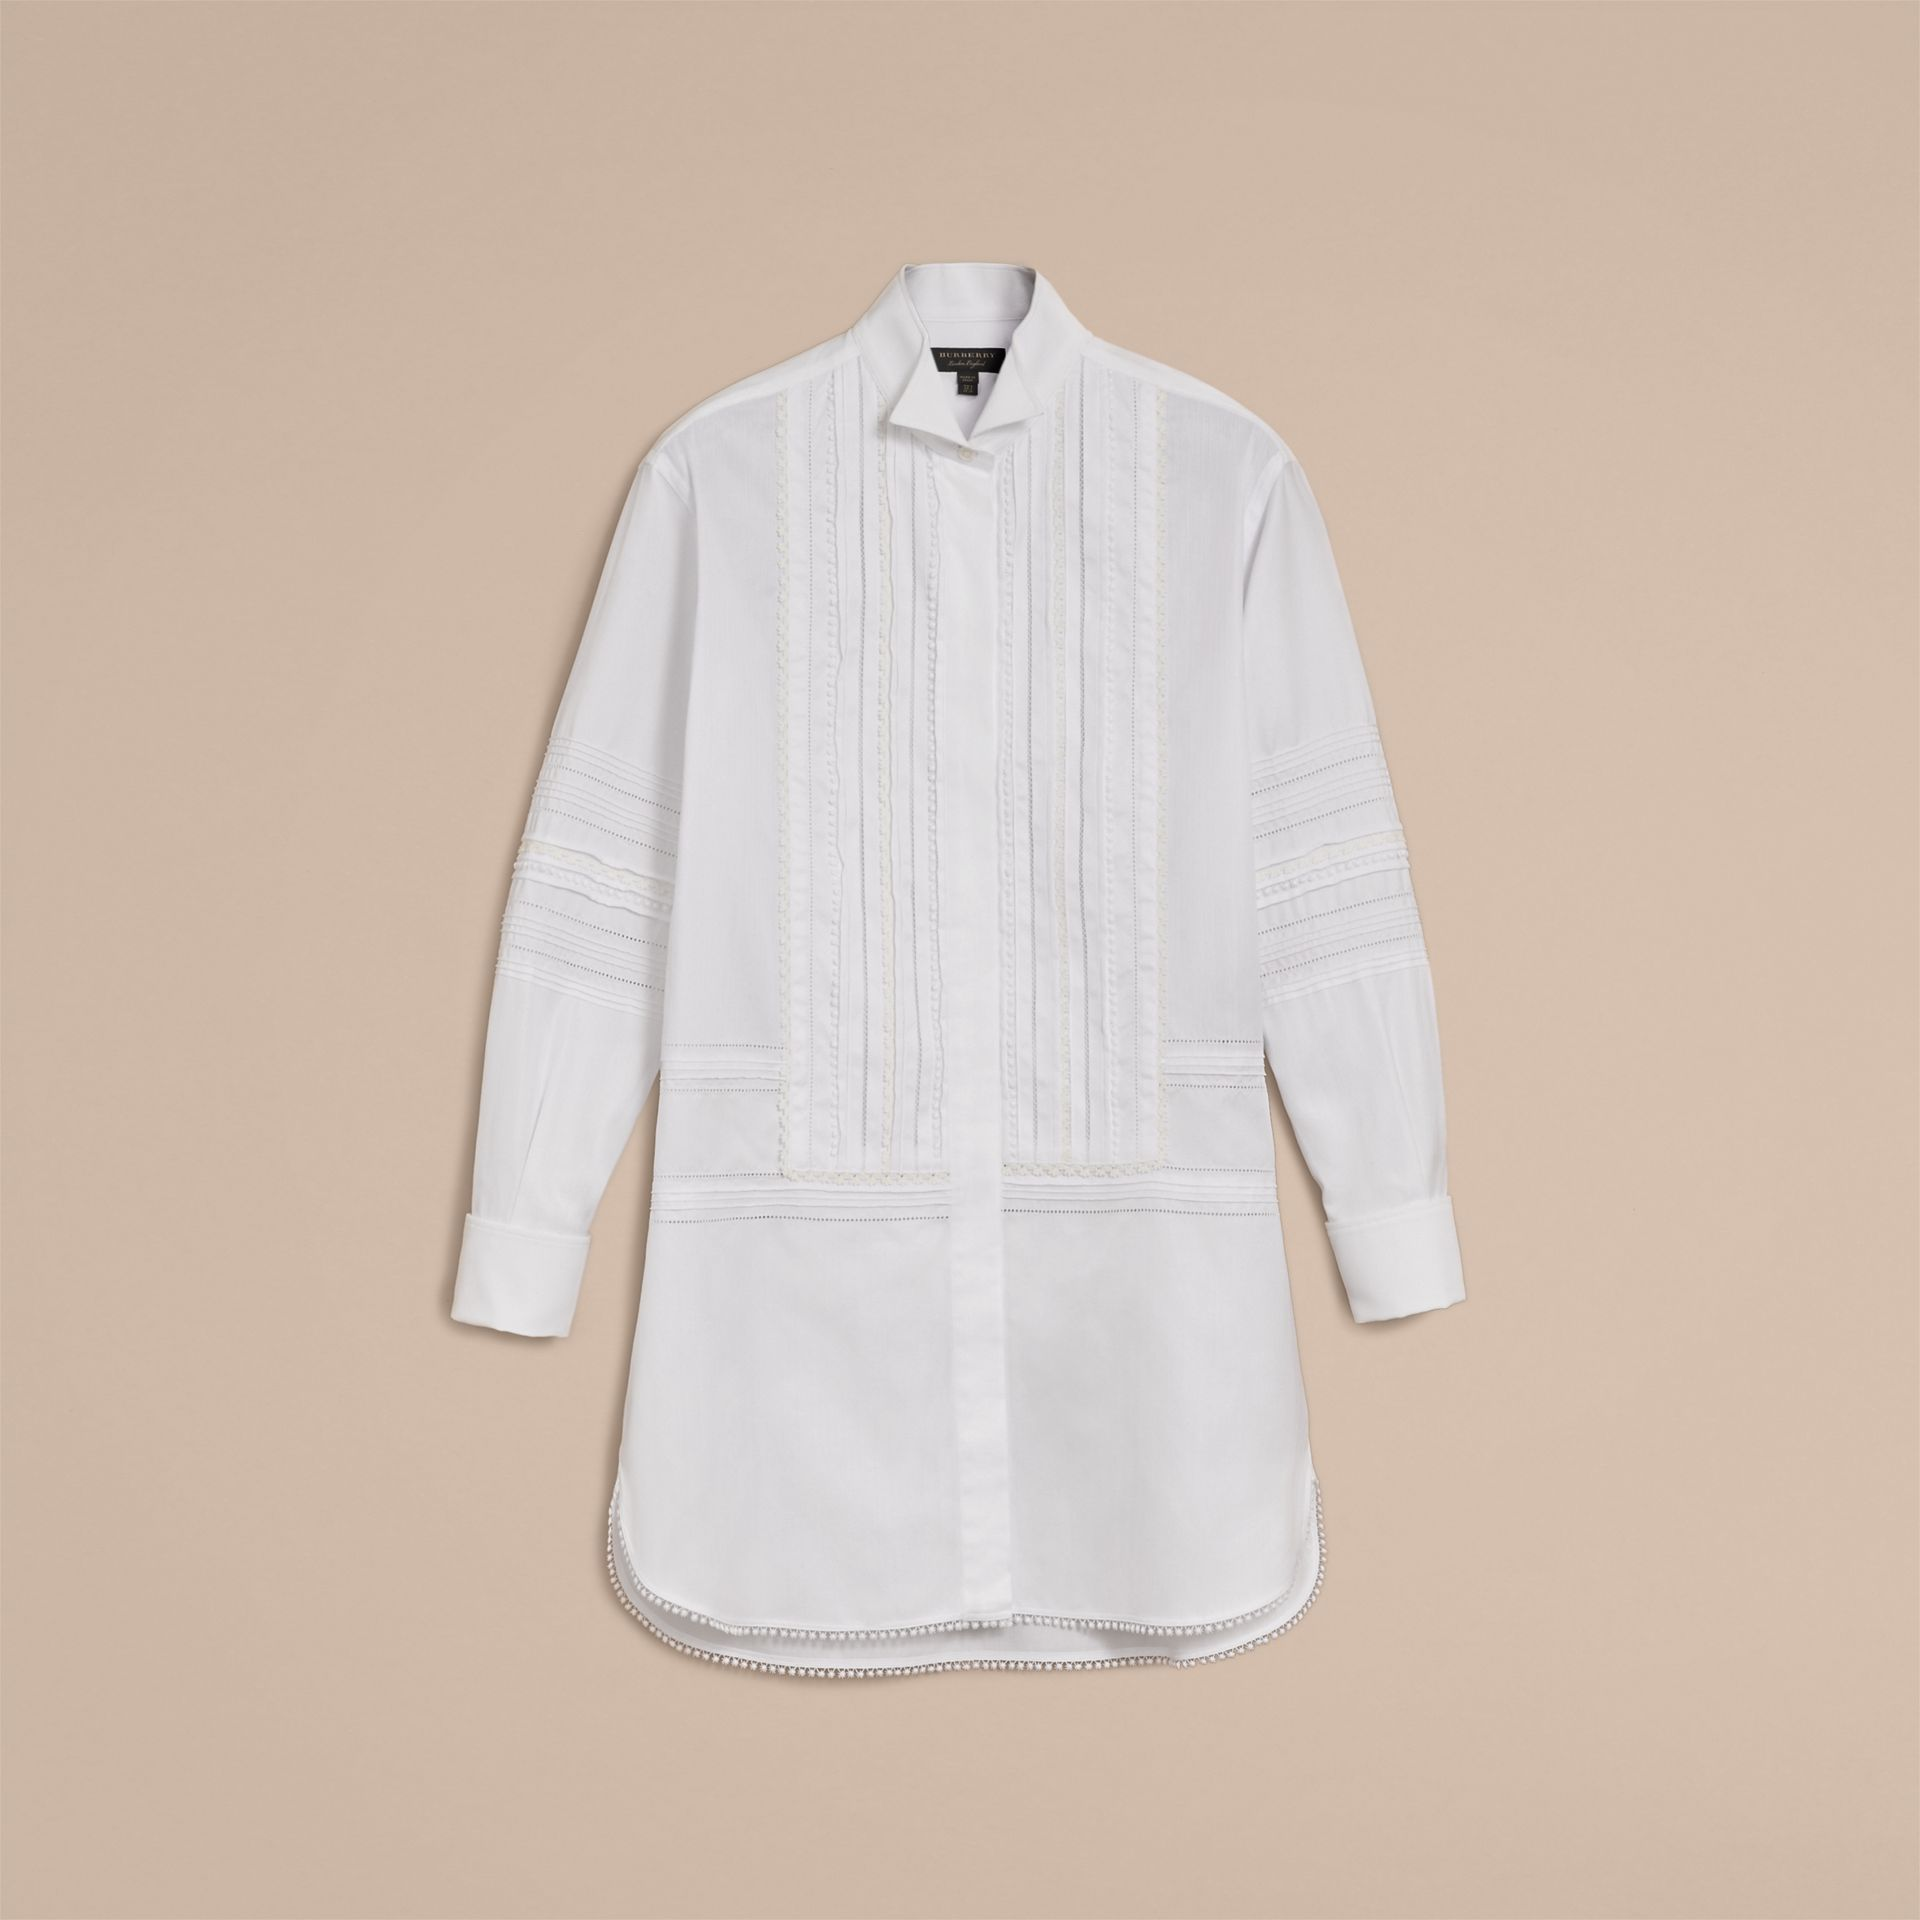 Pintuck and Macramé Trim Cotton Shirt Dress in White - Women | Burberry United Kingdom - gallery image 4